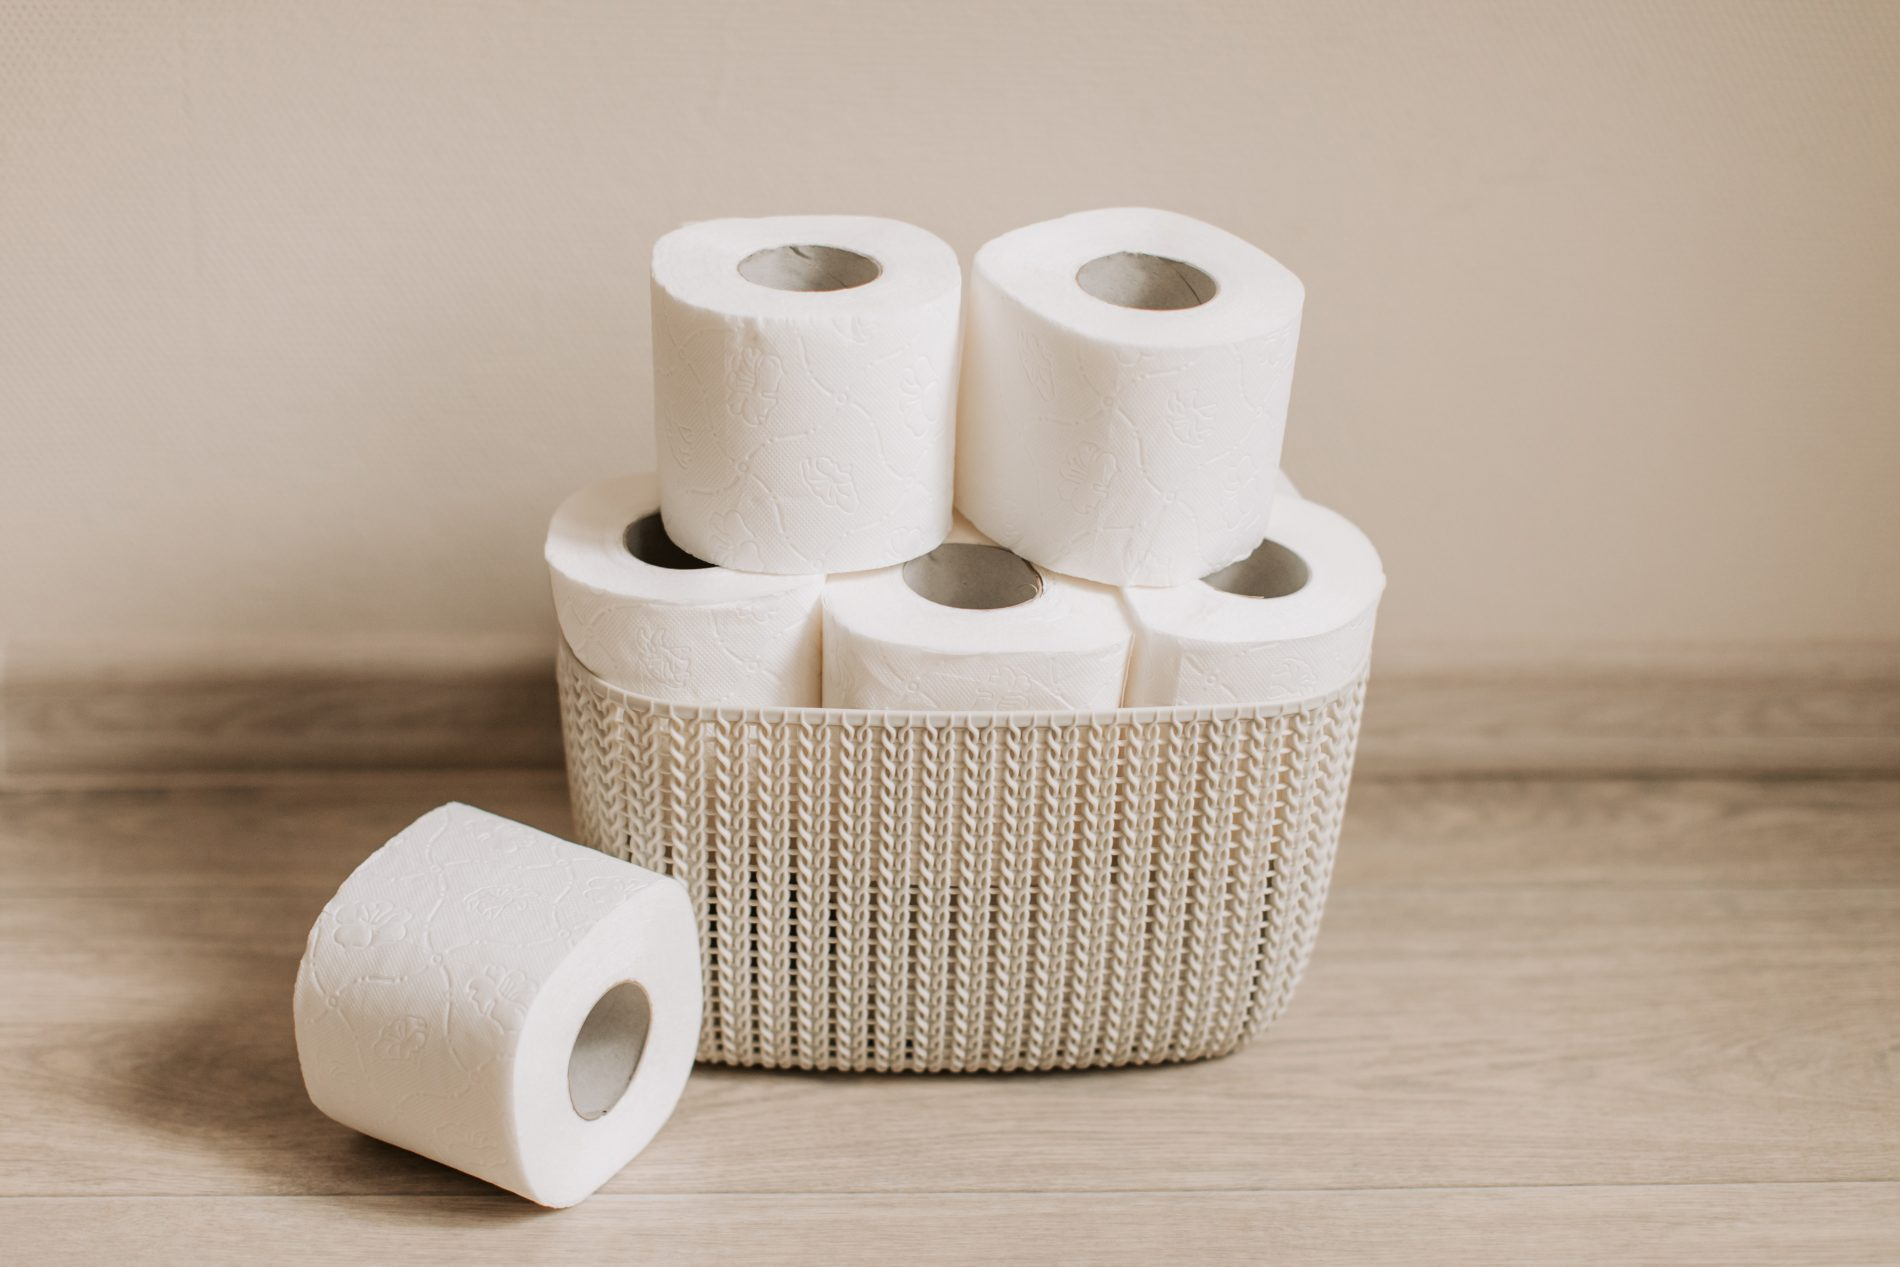 Toilet paper rolls on basket